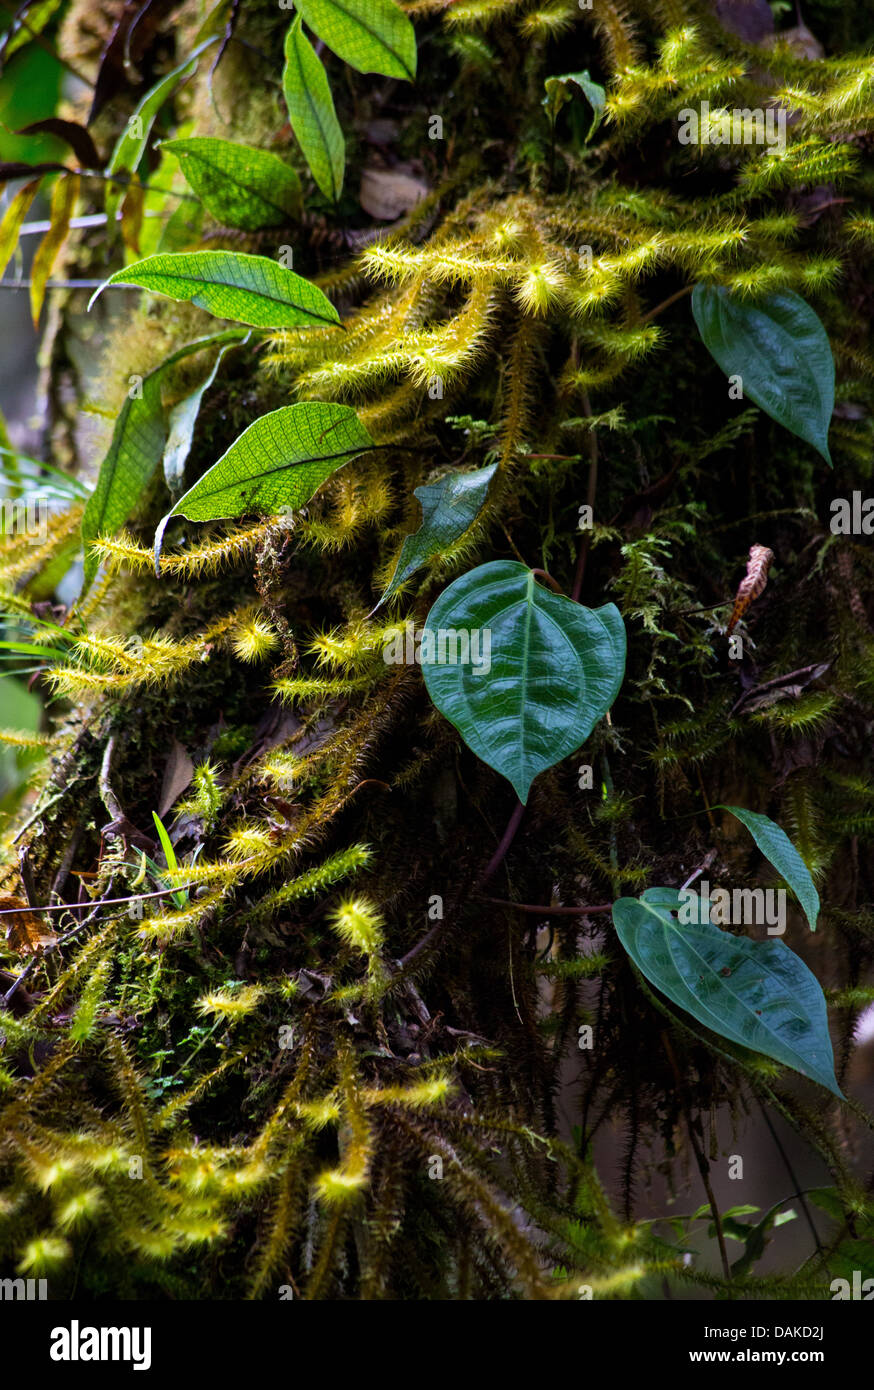 Moss and vine on a tree trunk in forest undergrowth, Papua New Guinea - Stock Image